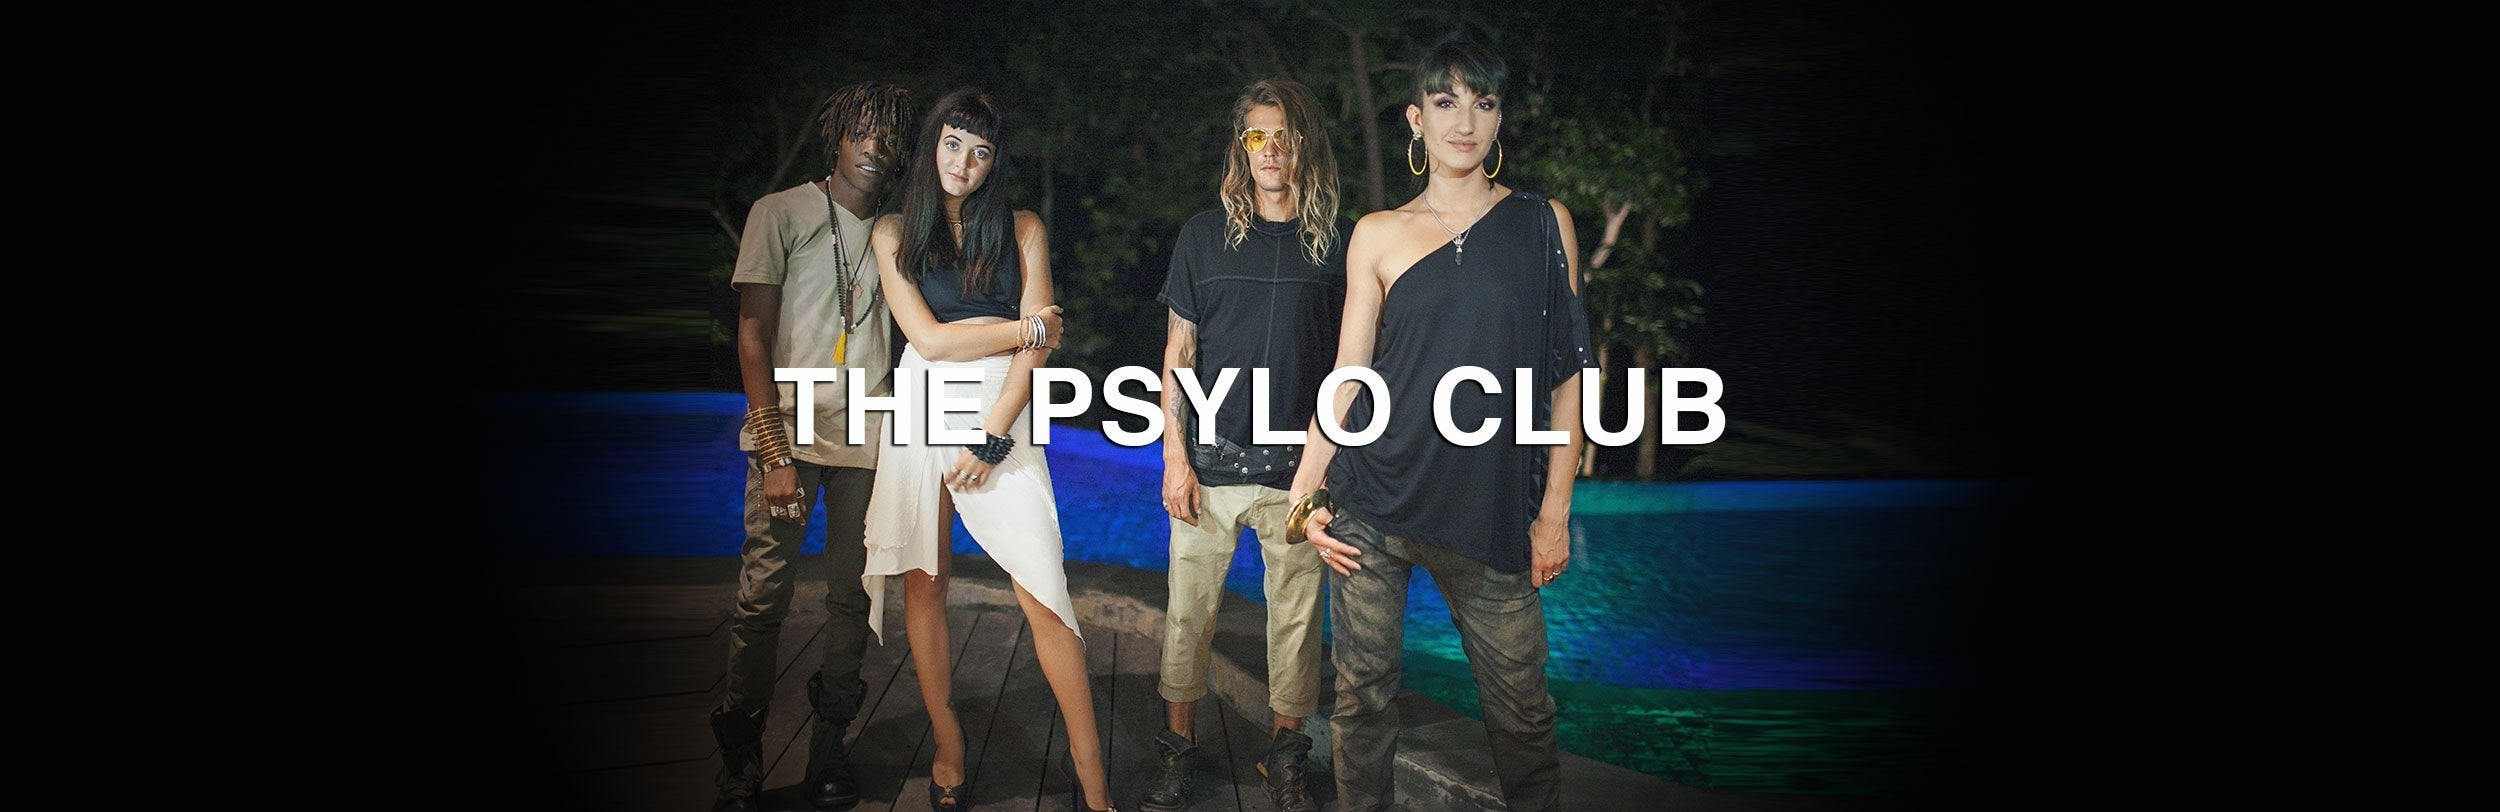 the Psylo Club rewards and referrals